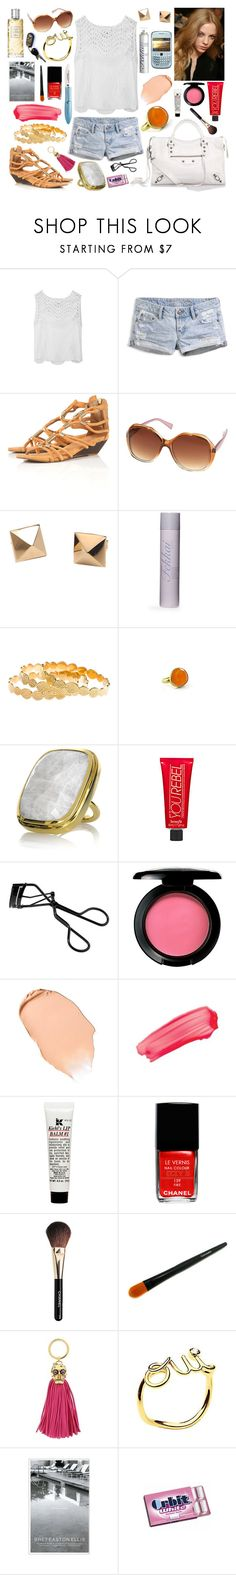 """07-24-11"" by belledenuit ❤ liked on Polyvore featuring 3.1 Phillip Lim, American Eagle Outfitters, Balenciaga, Topshop, Versus, Han Cholo, Fekkai, Melinda Maria, Pippa Small and Monica Vinader"